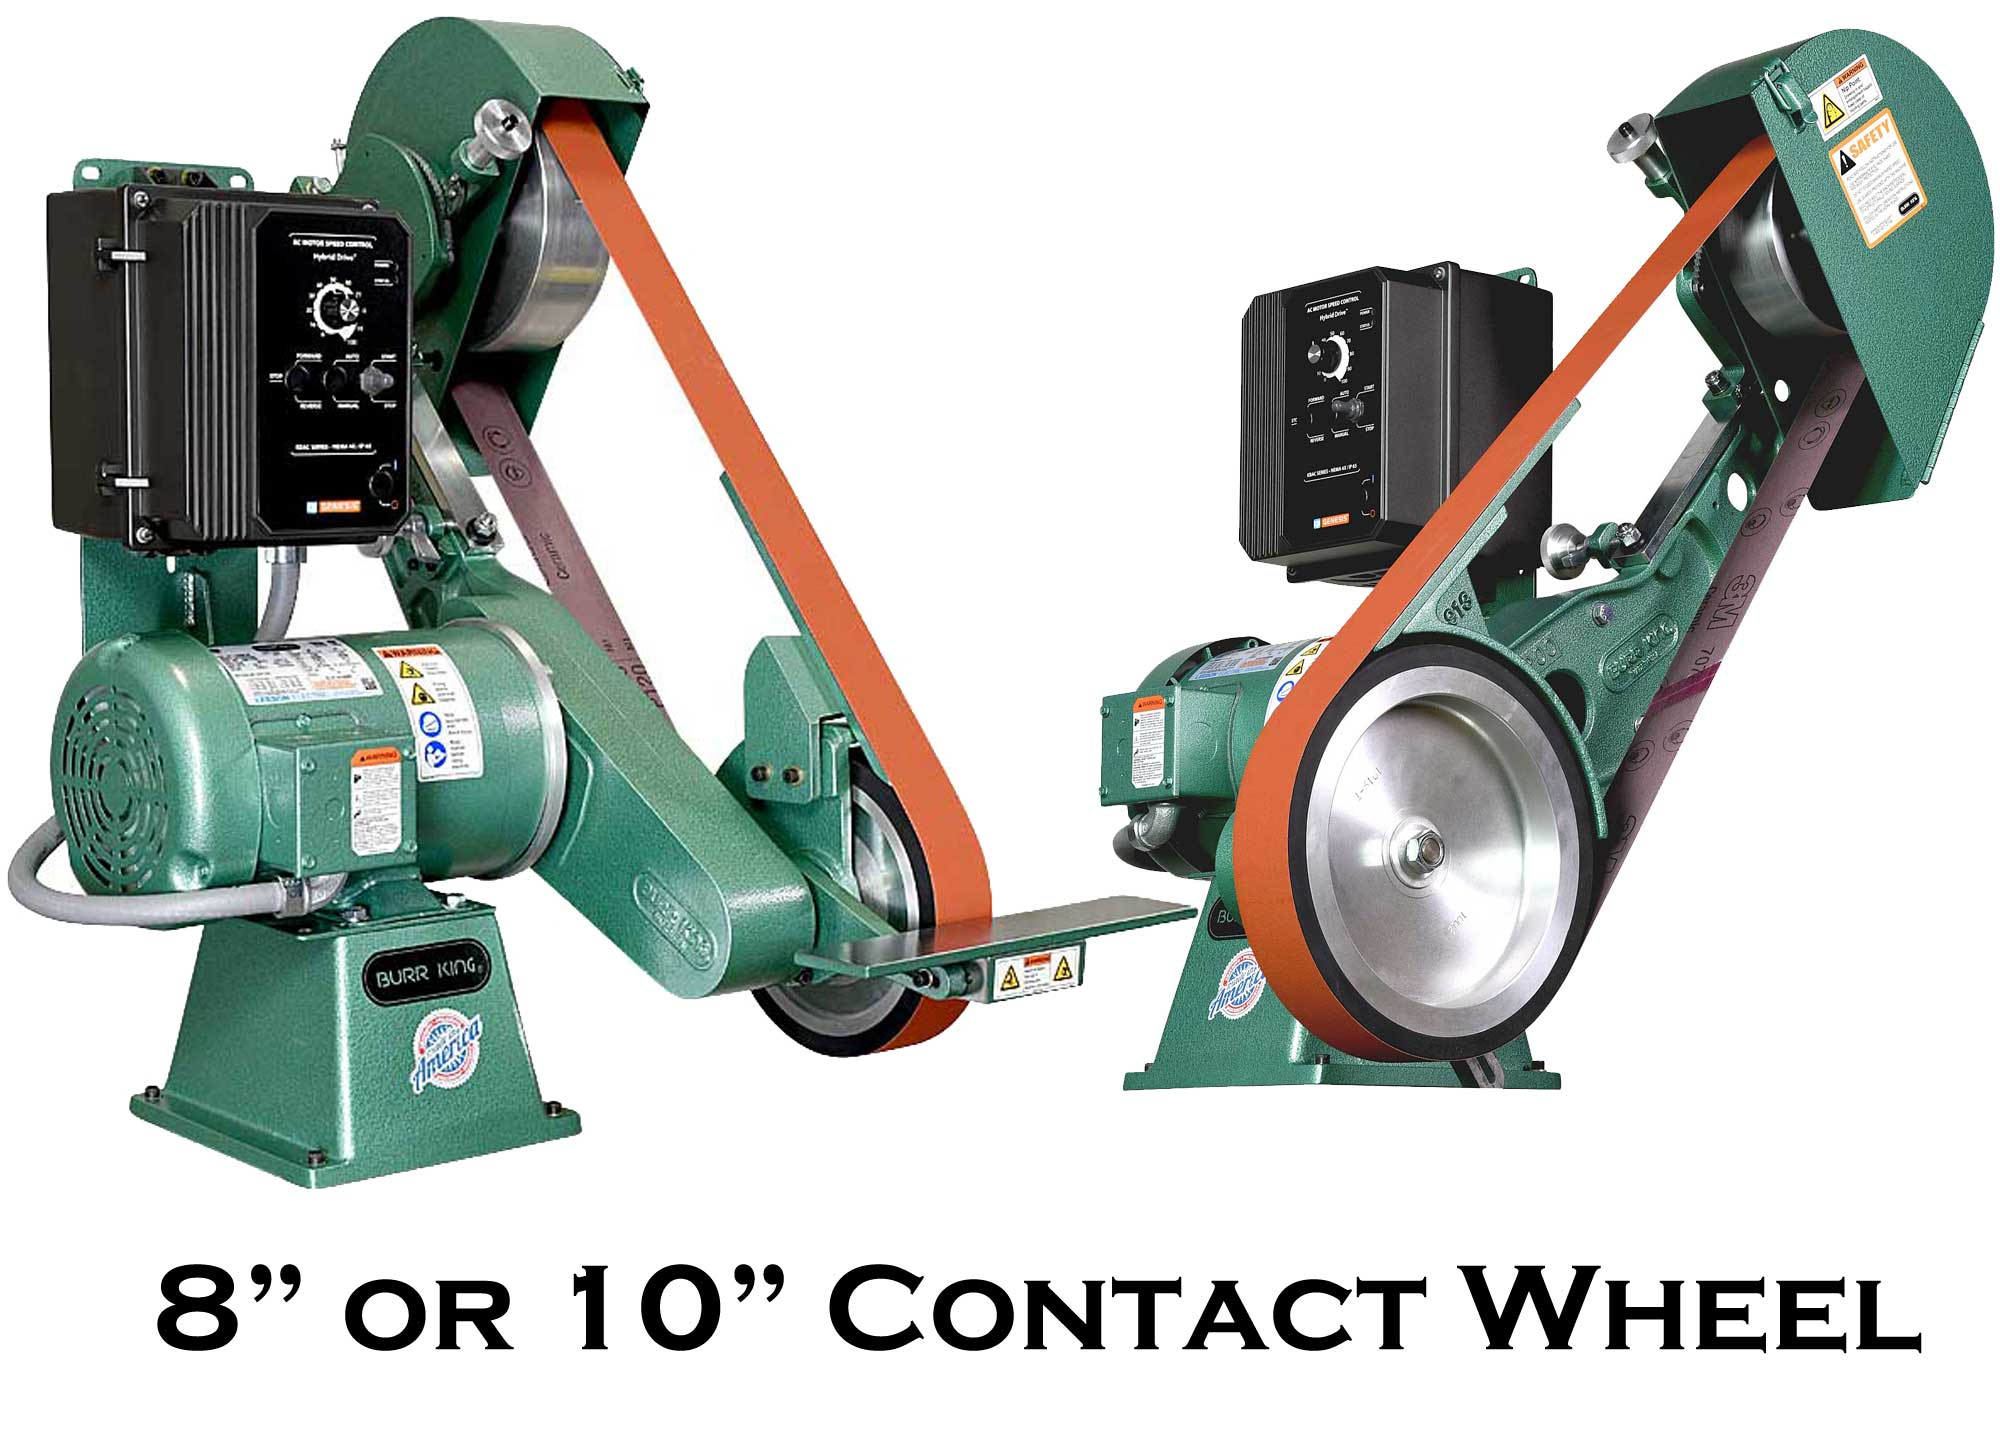 960-272 with 8` or 10` Contact Wheel - Fixed or Variable Speed Available